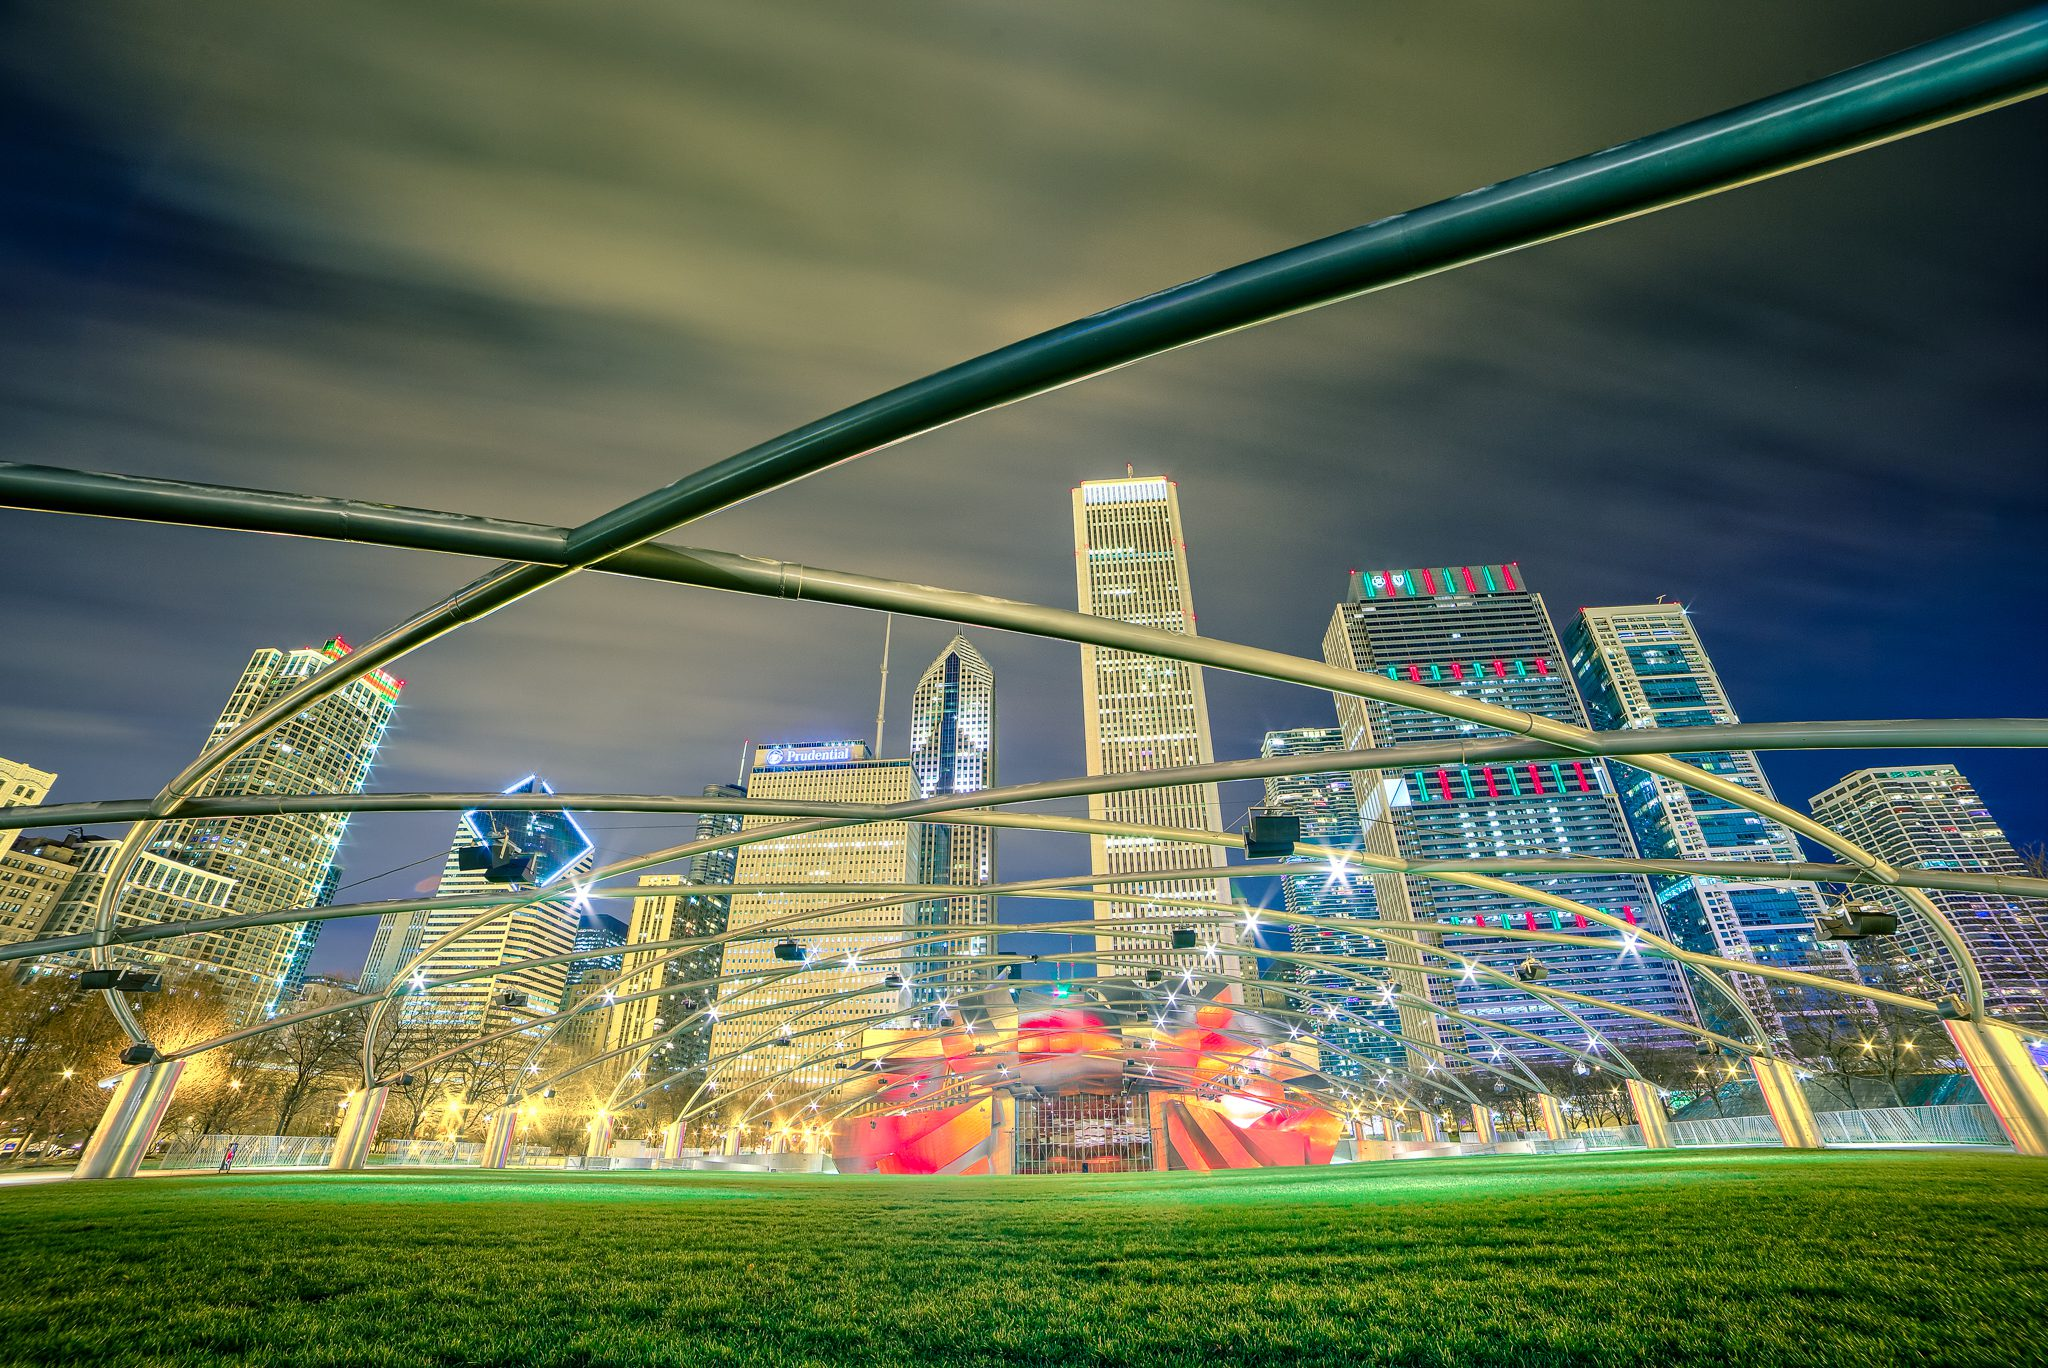 Jay Pritzker Pavilion, also known as Pritzker Pavilion or Pritzker Music Pavilion, is a bandshell in Millennium Park in Chicago. It is classified as a work of art rather than a building.